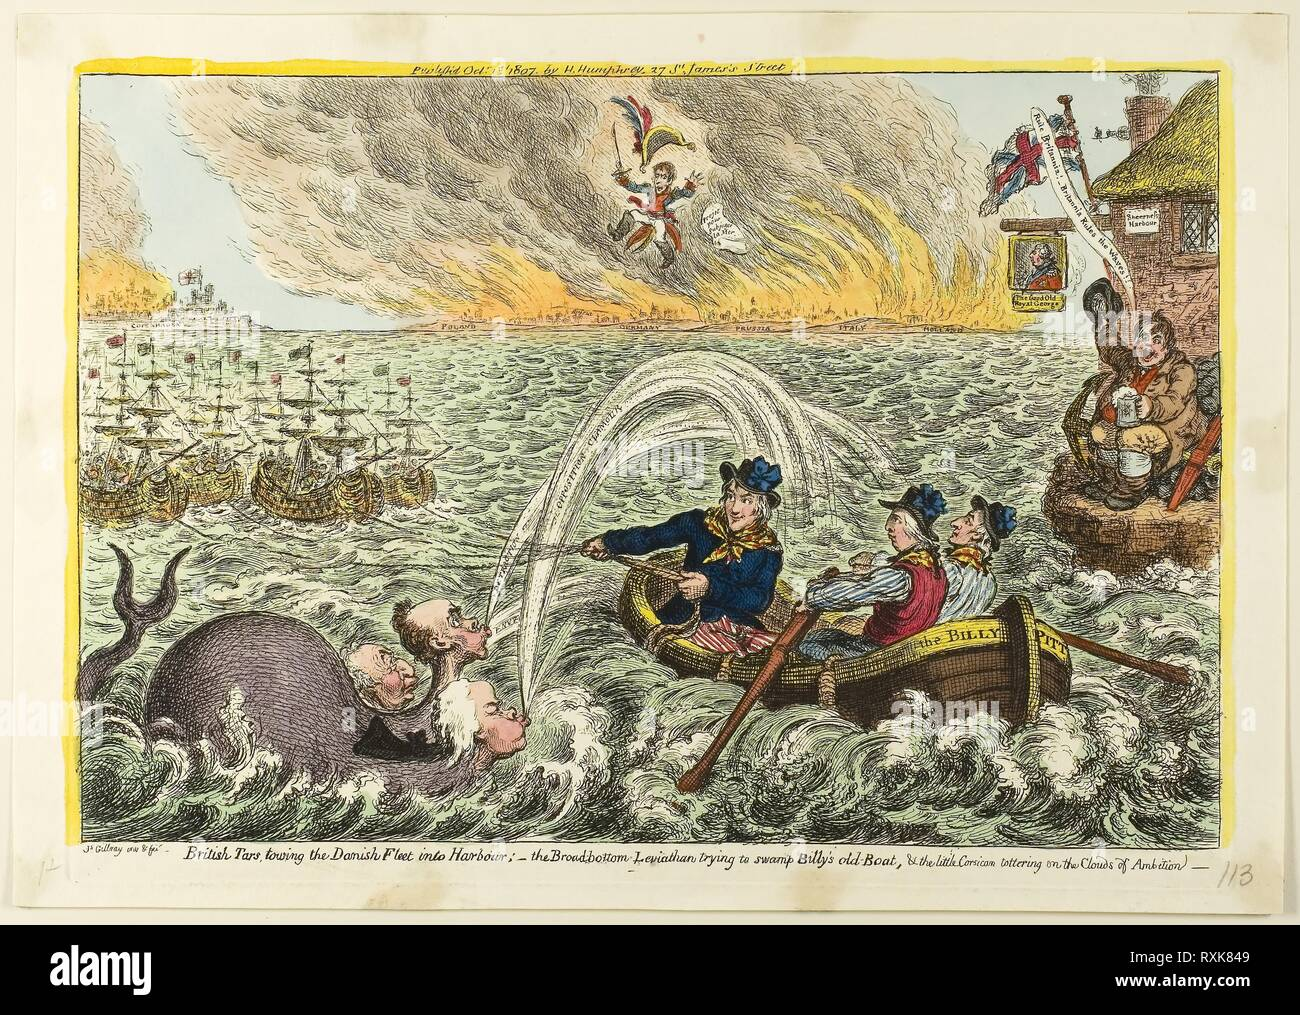 British Tars, Towing the Danish Fleet into Harbour. James Gillray (English, 1756-1815); published by Hannah Humphrey (English, c. 1745-1818). Date: 1807. Dimensions: 230 × 340 mm (image); 248 × 350 mm (plate); 270 × 380 mm (sheet). Hand-colored etching on paper. Origin: England. Museum: The Chicago Art Institute. - Stock Image